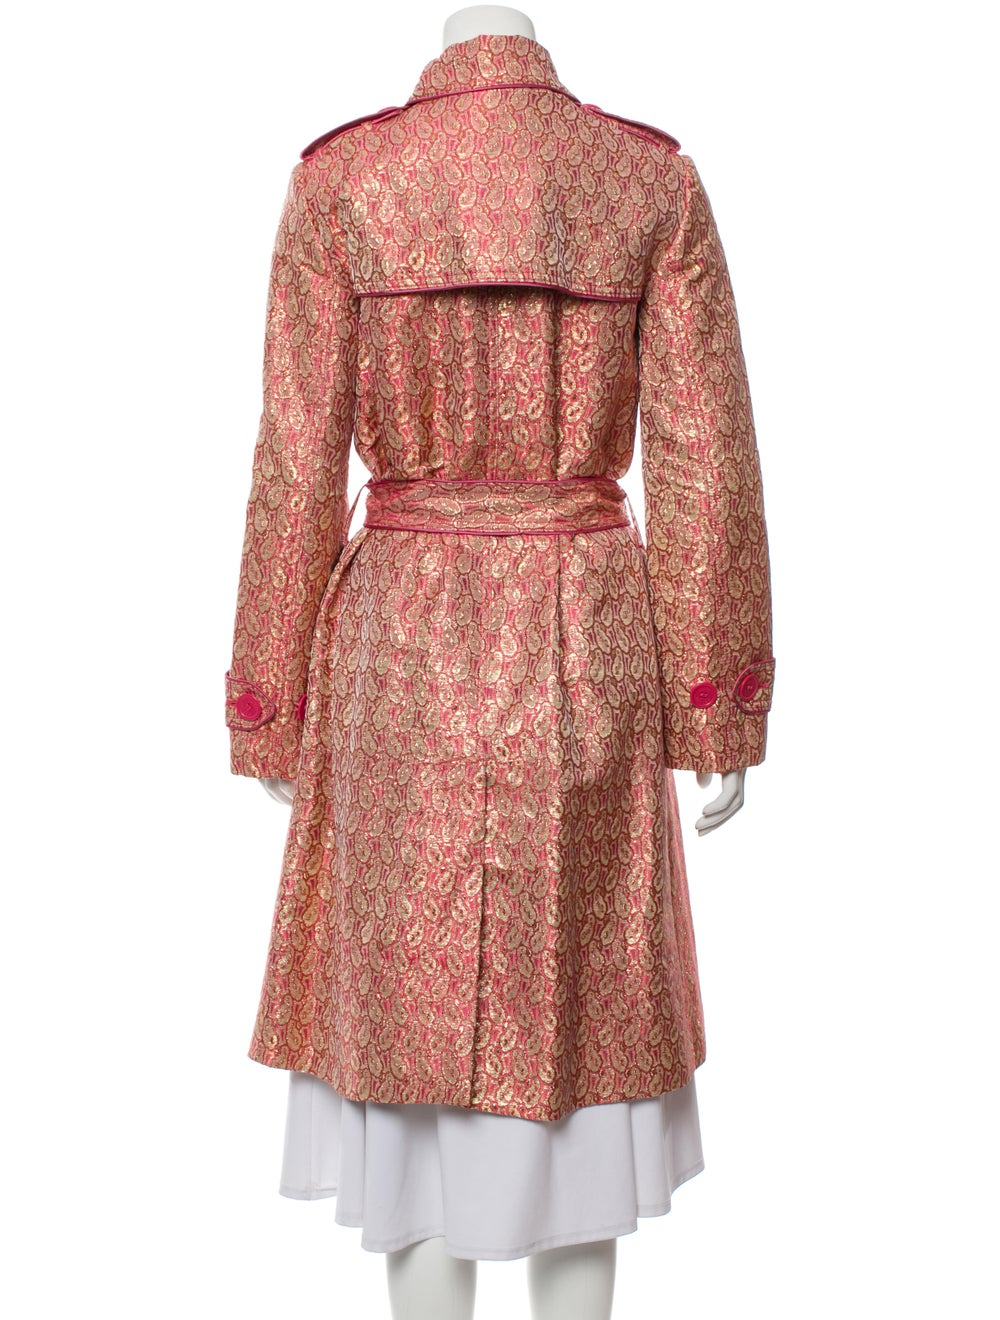 Marc Jacobs Brocade Double-Breasted Coat Pink - image 3